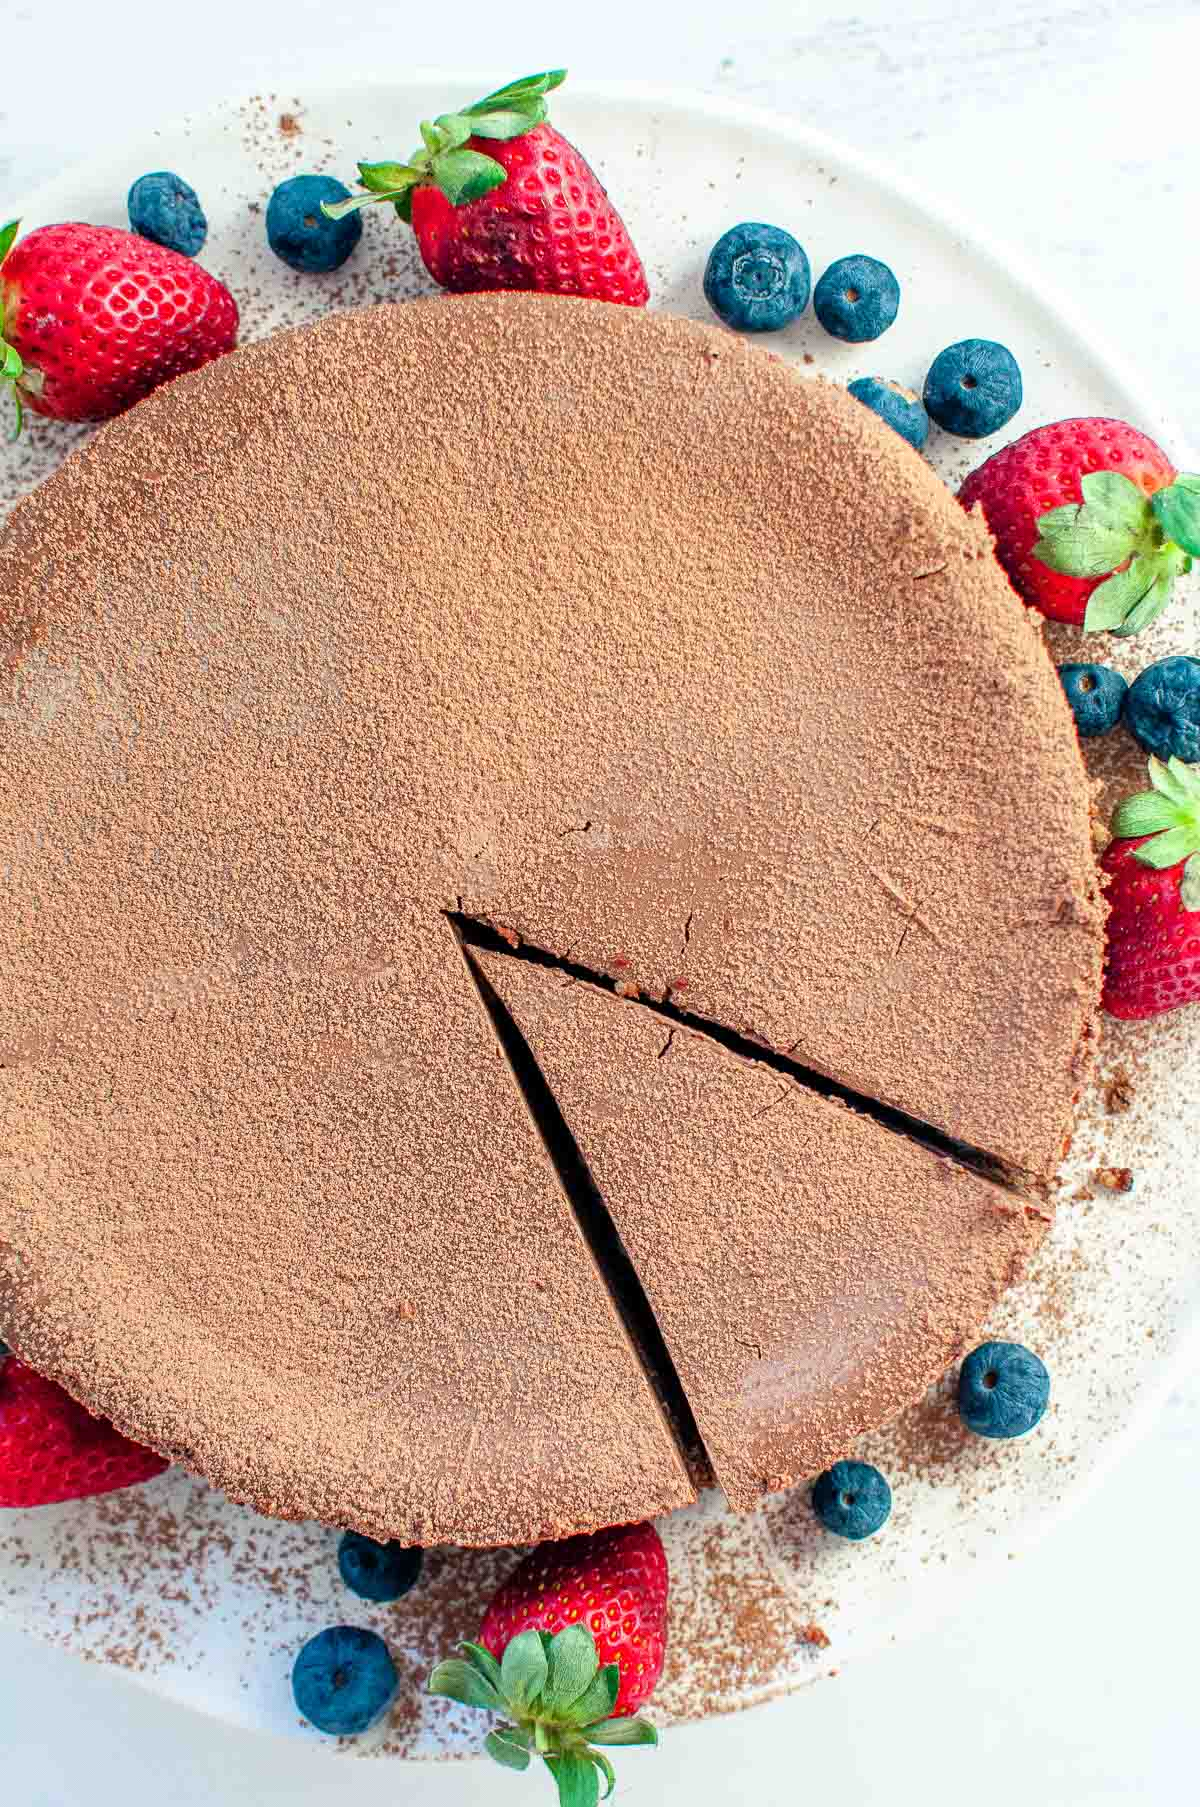 chocolate cheesecake and berries on a serving platter